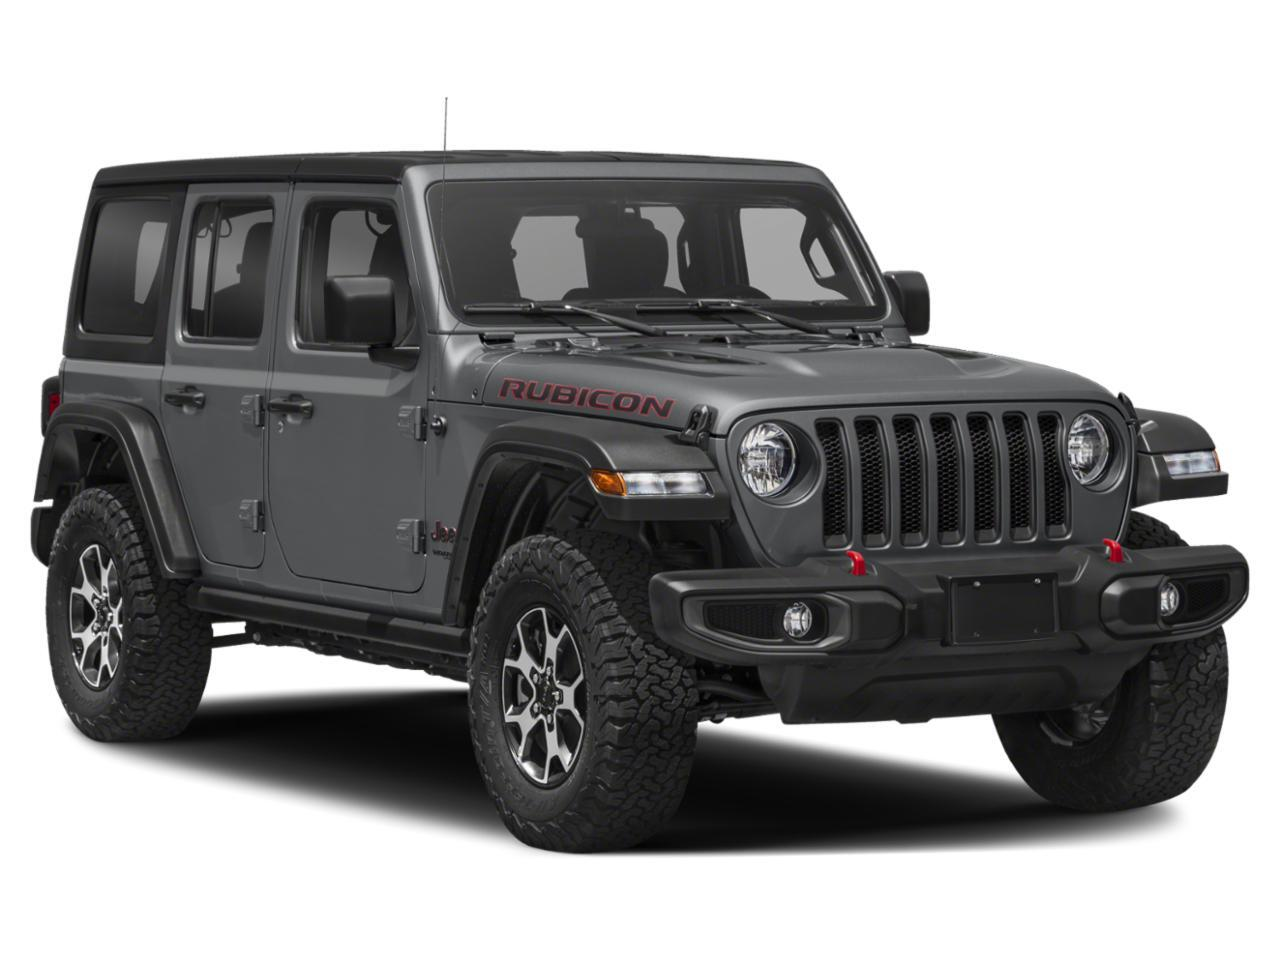 2021 Jeep Wrangler UNLIMITED RUBICON 4X4 Port Angeles WA